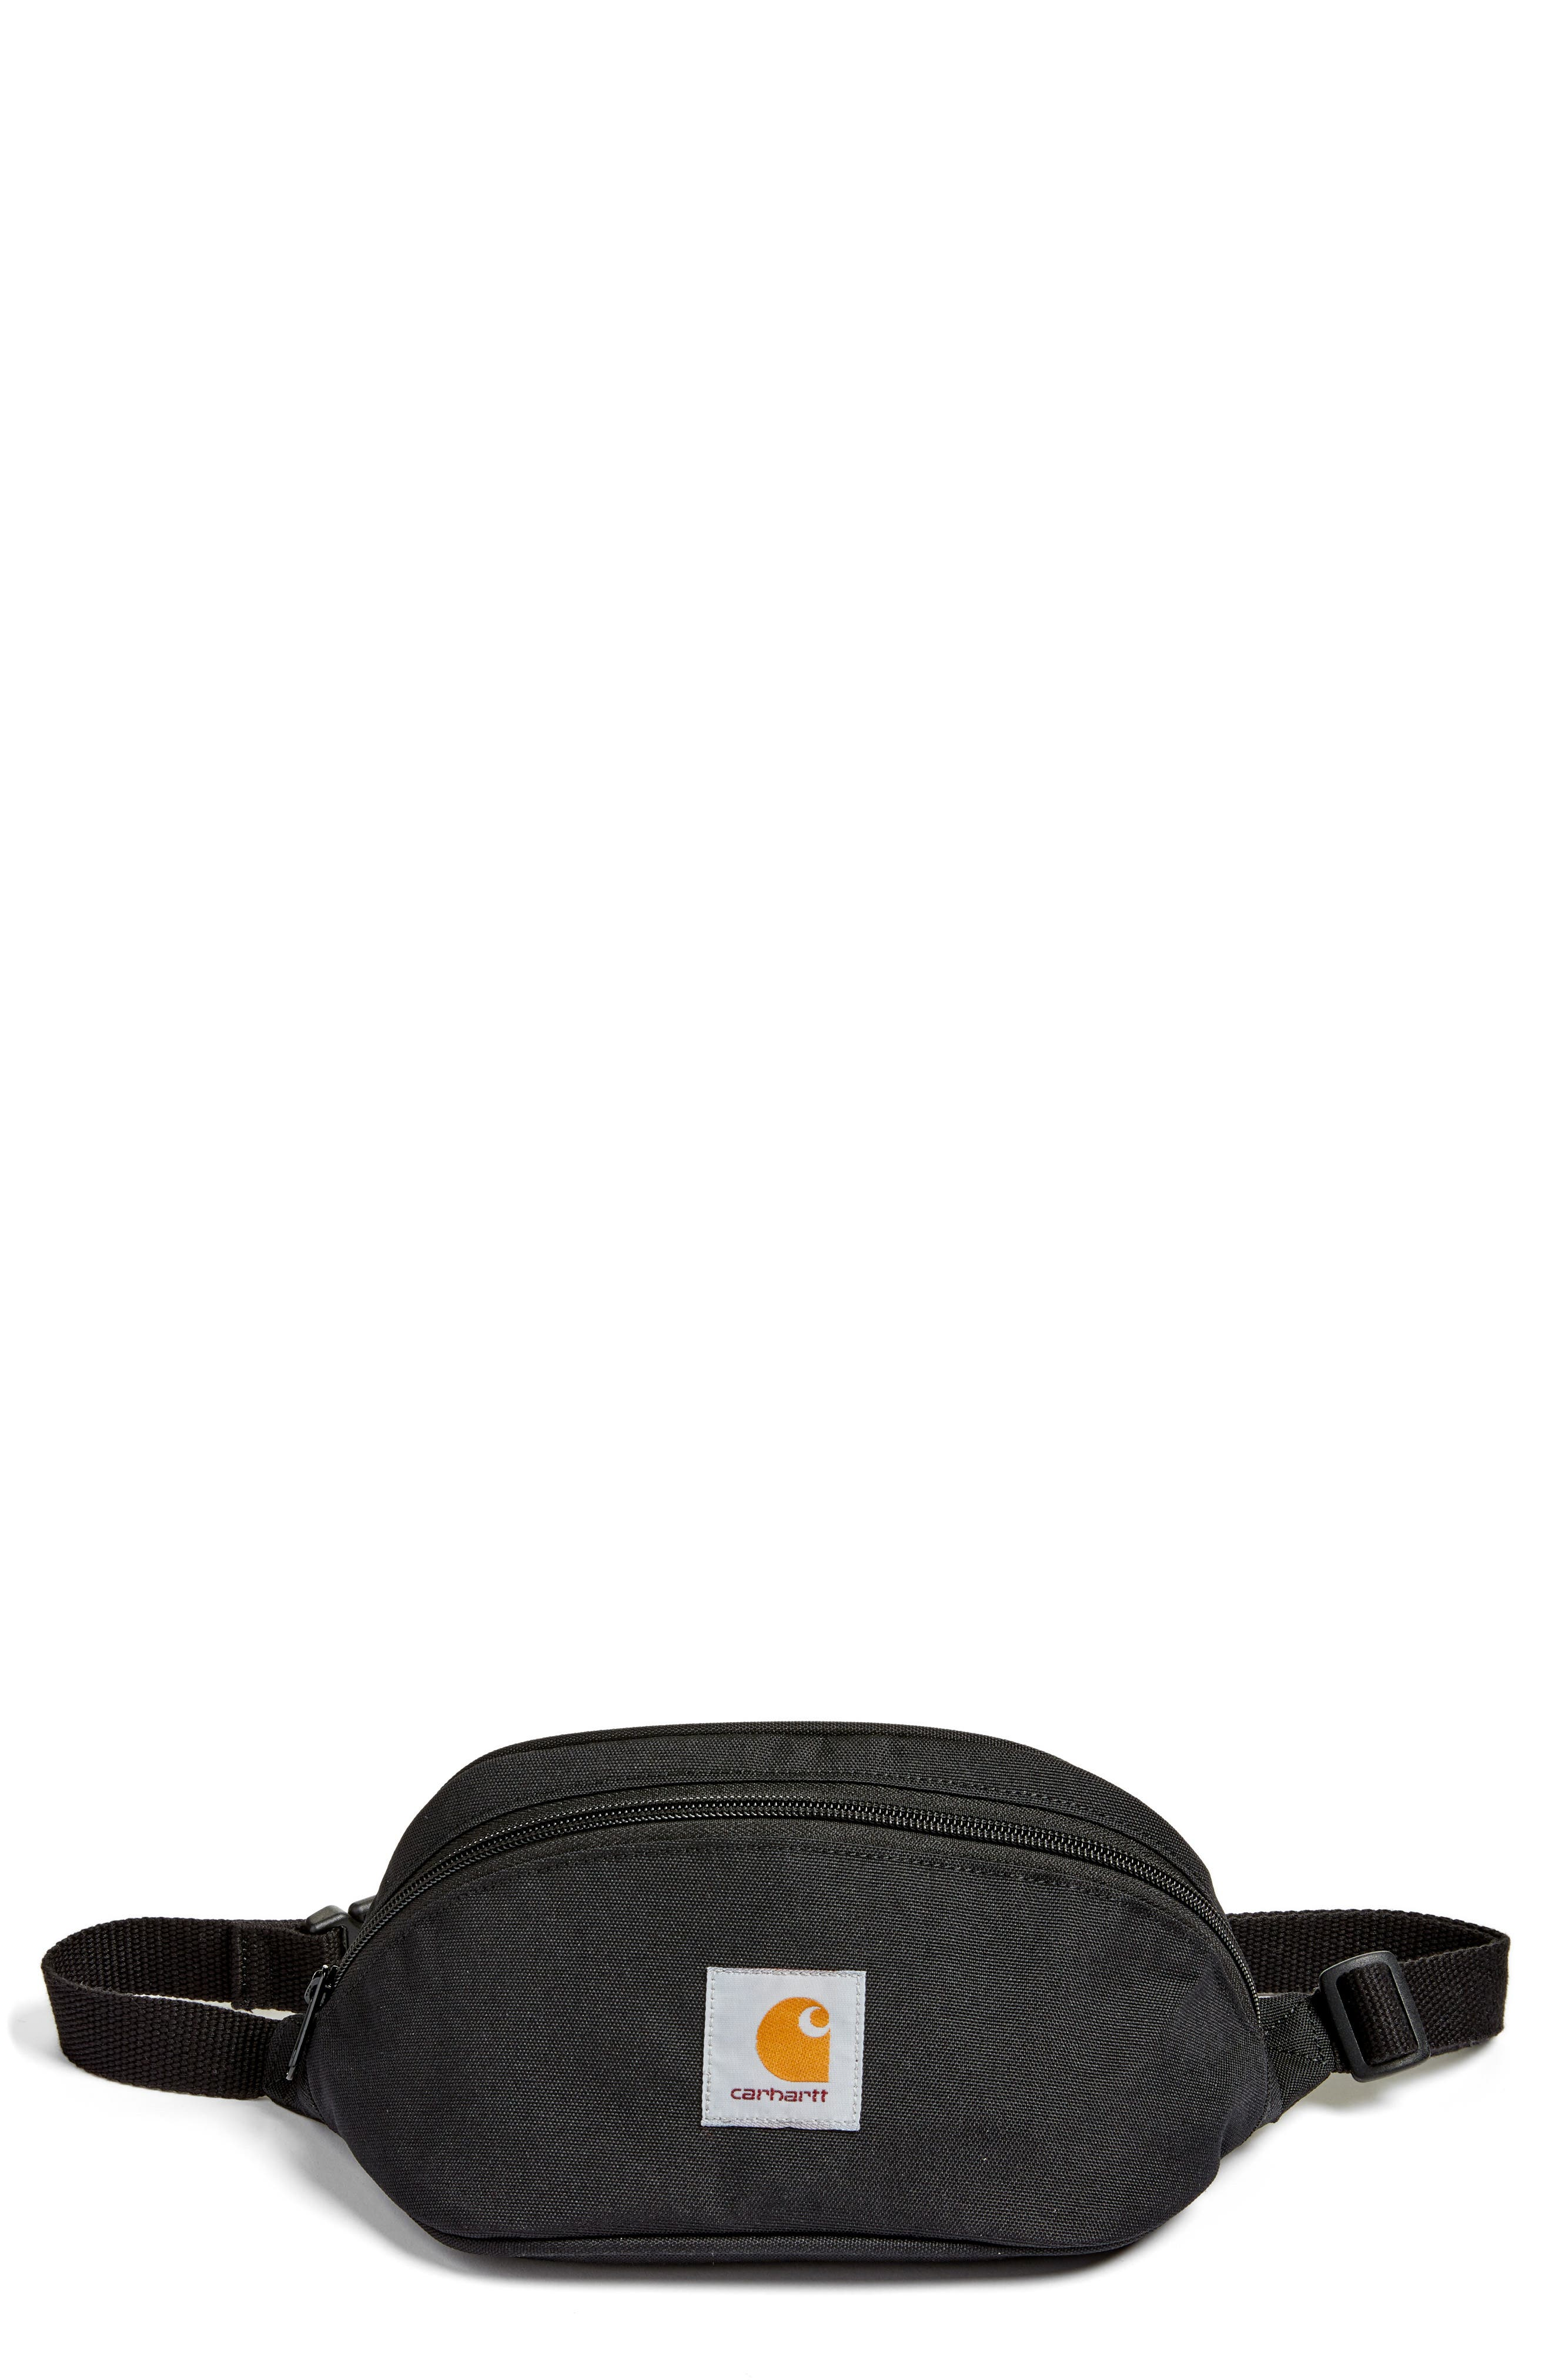 Belt Bag,                             Main thumbnail 1, color,                             Black/Black